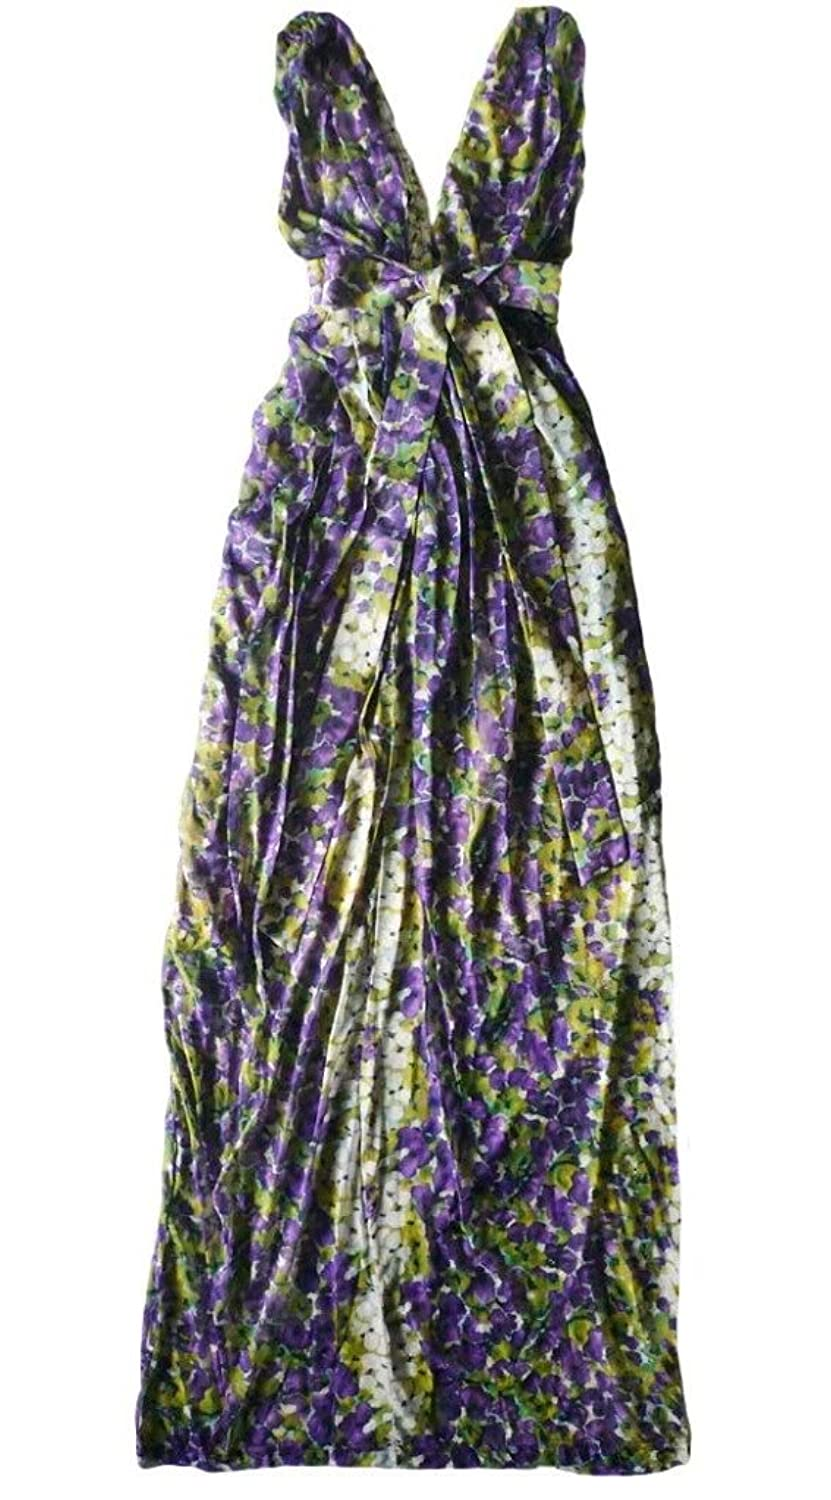 Mina Glyfada Uk Dress Maxi Dress Purple M